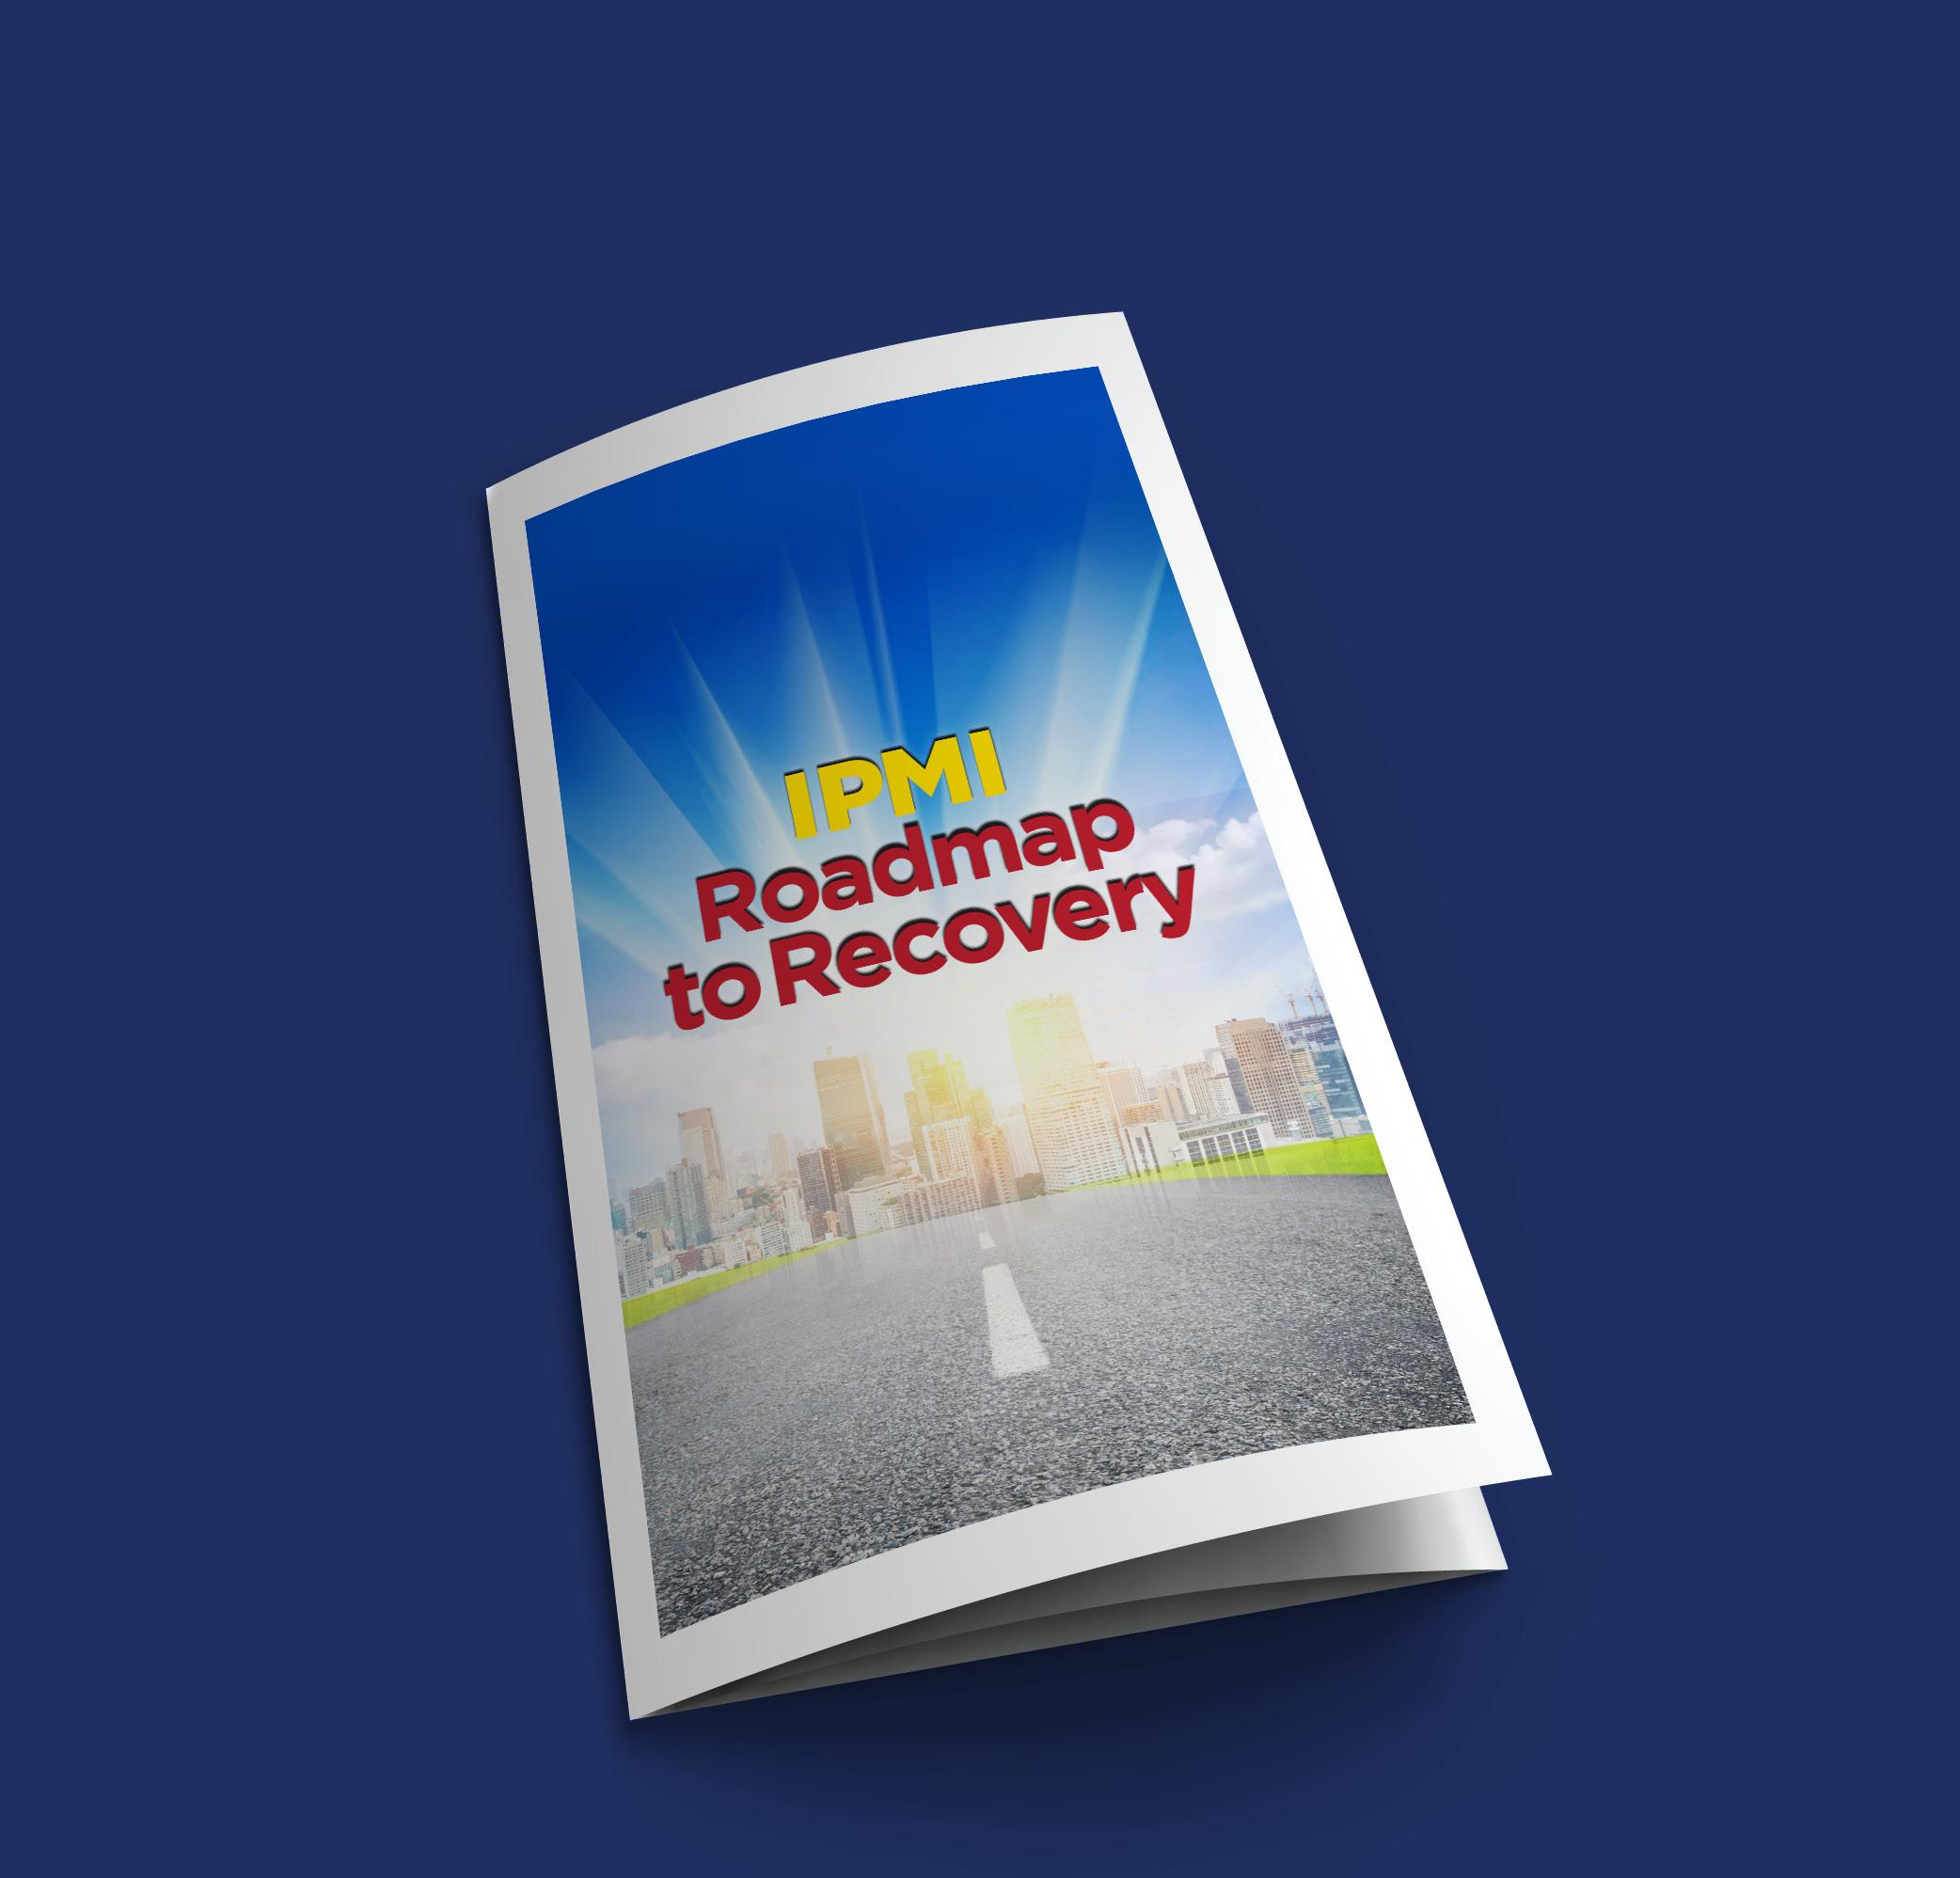 Page 4 of Introduction to Roadmap to Recovery. Published July 2020